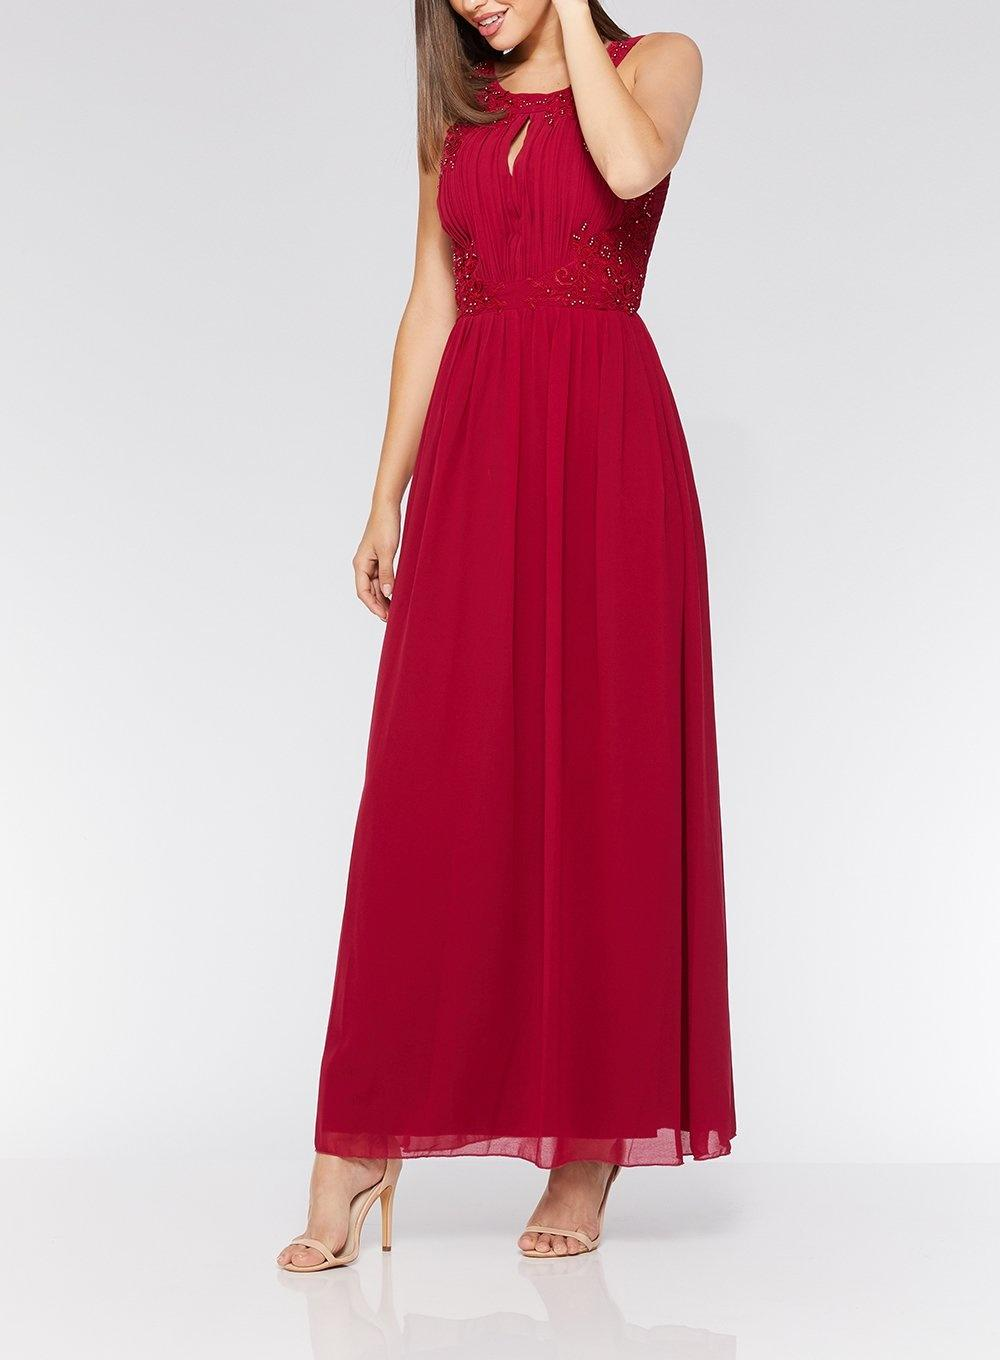 7f8f0849073 Dorothy Perkins Quiz Raspberry Embroidered High Neck Maxi Dress in ...